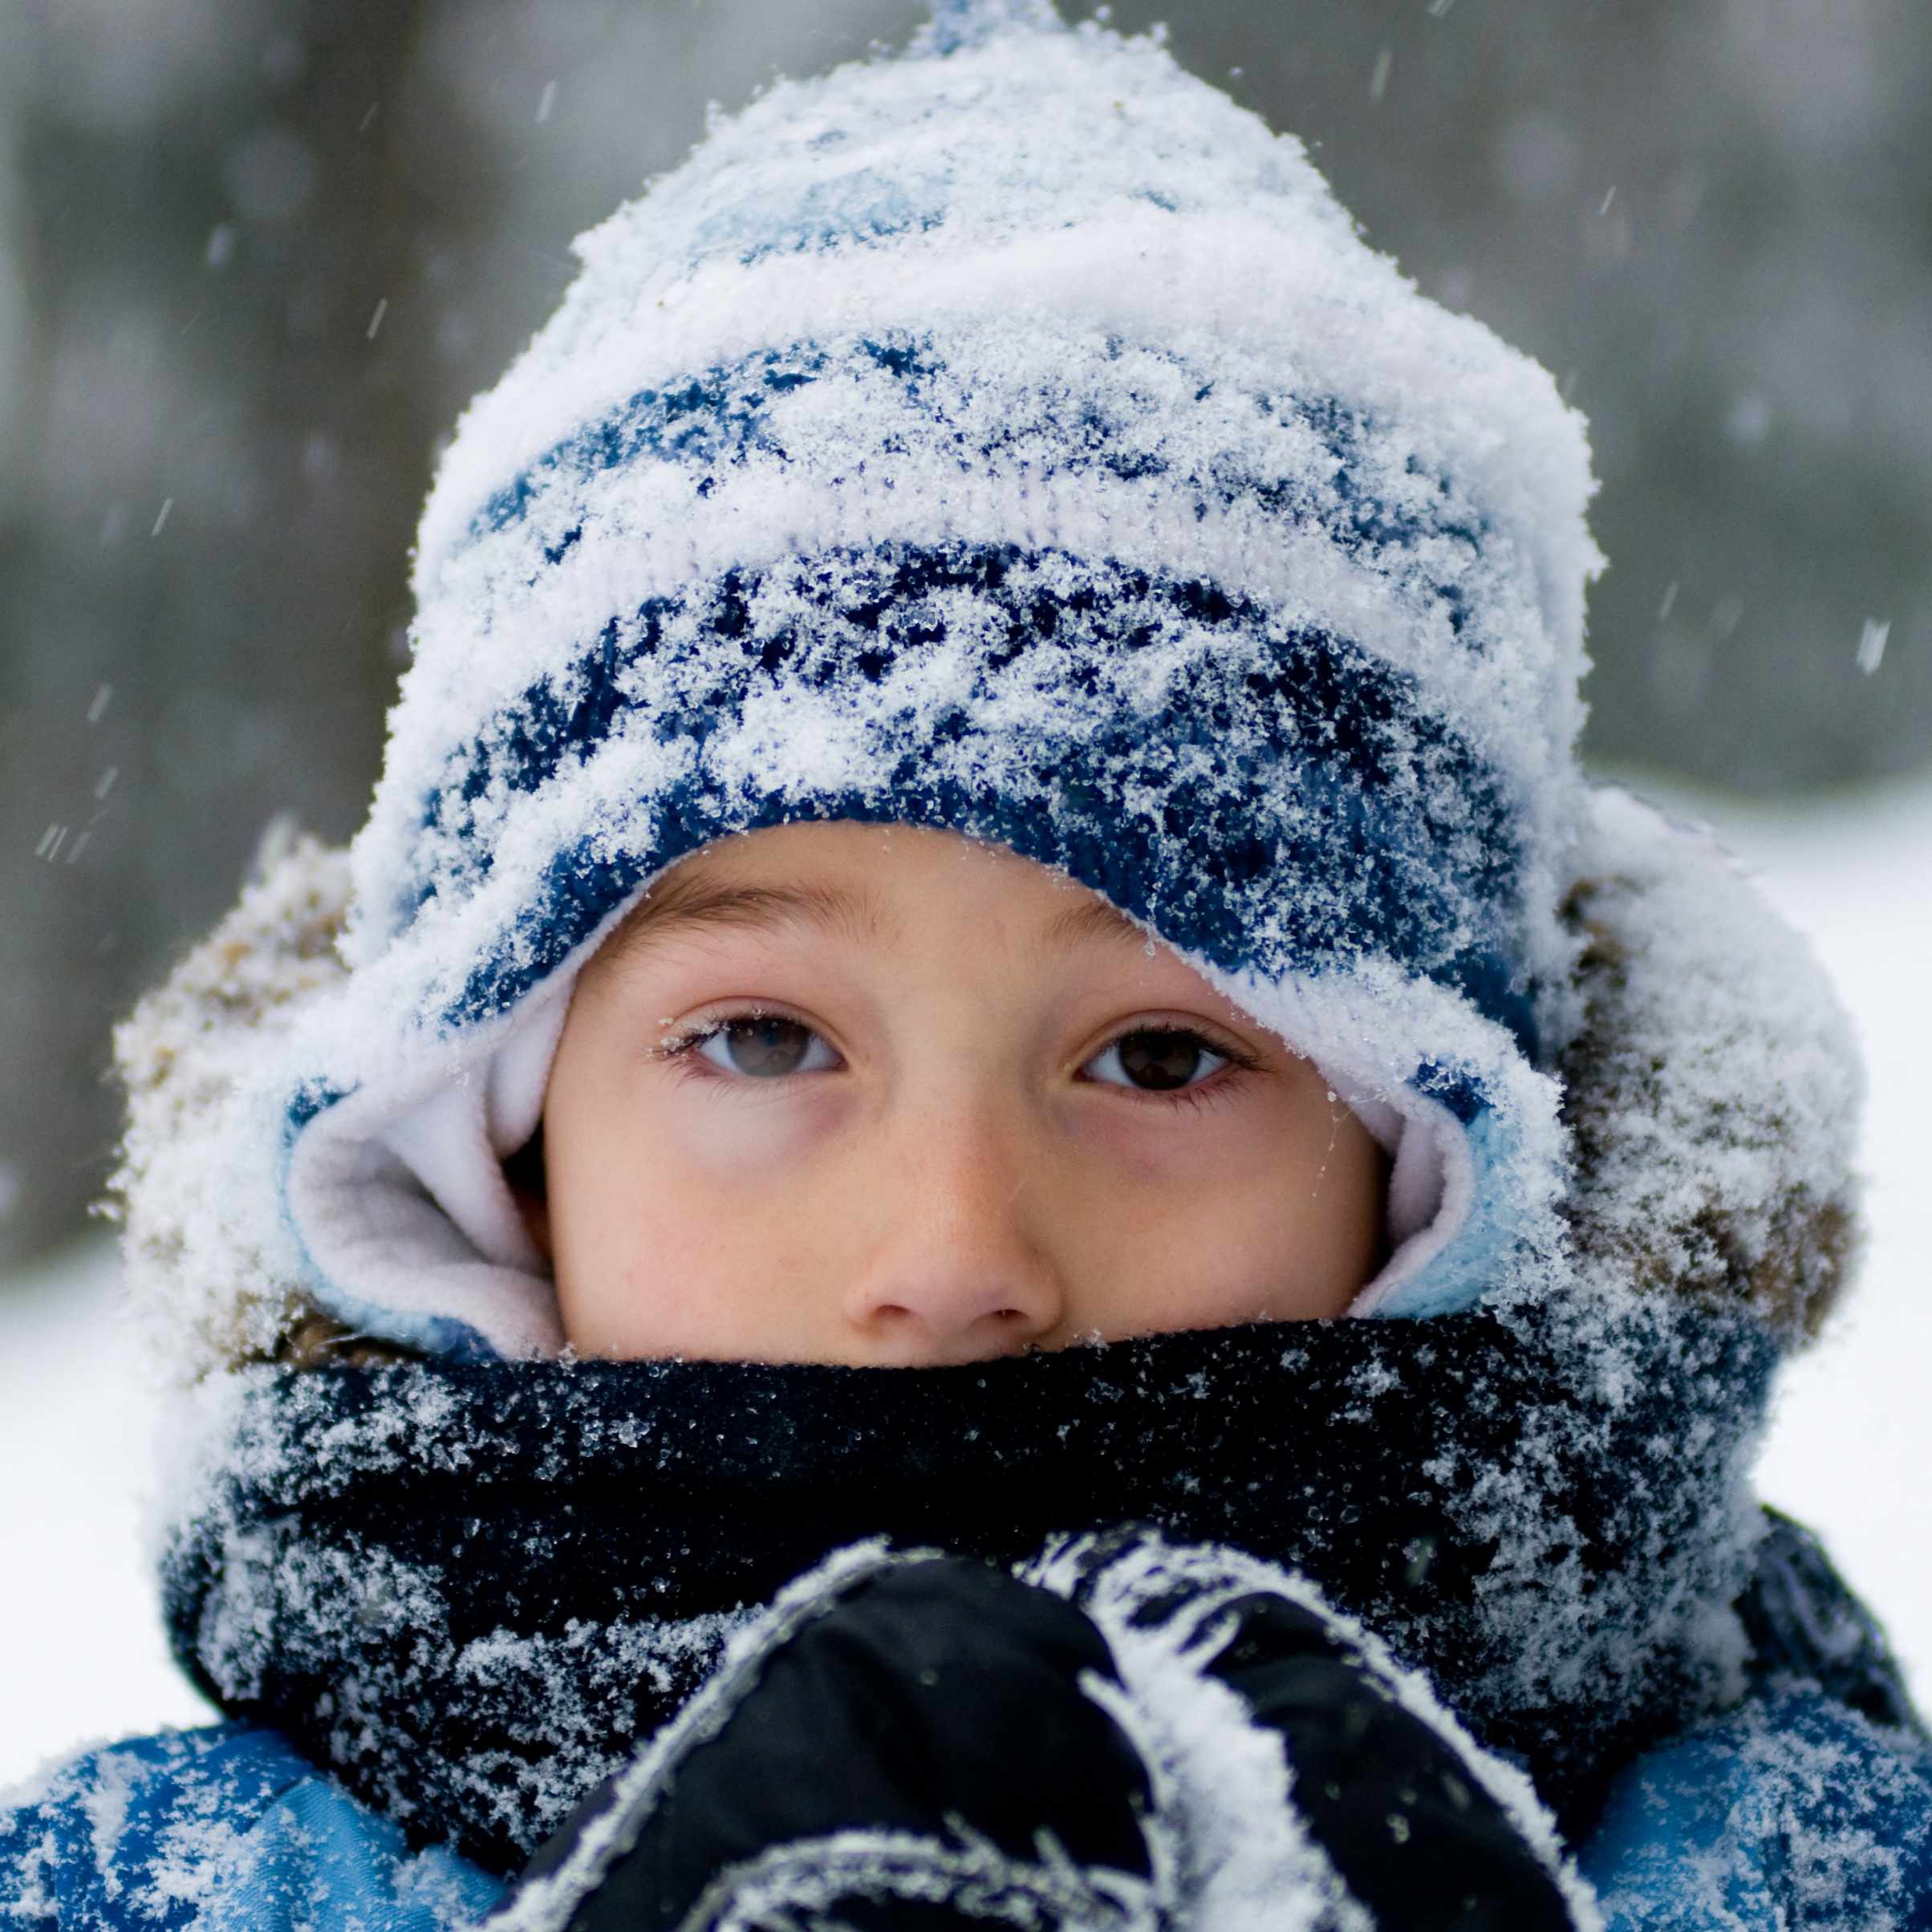 a cold little boy bundled up in winter clothes with snow falling